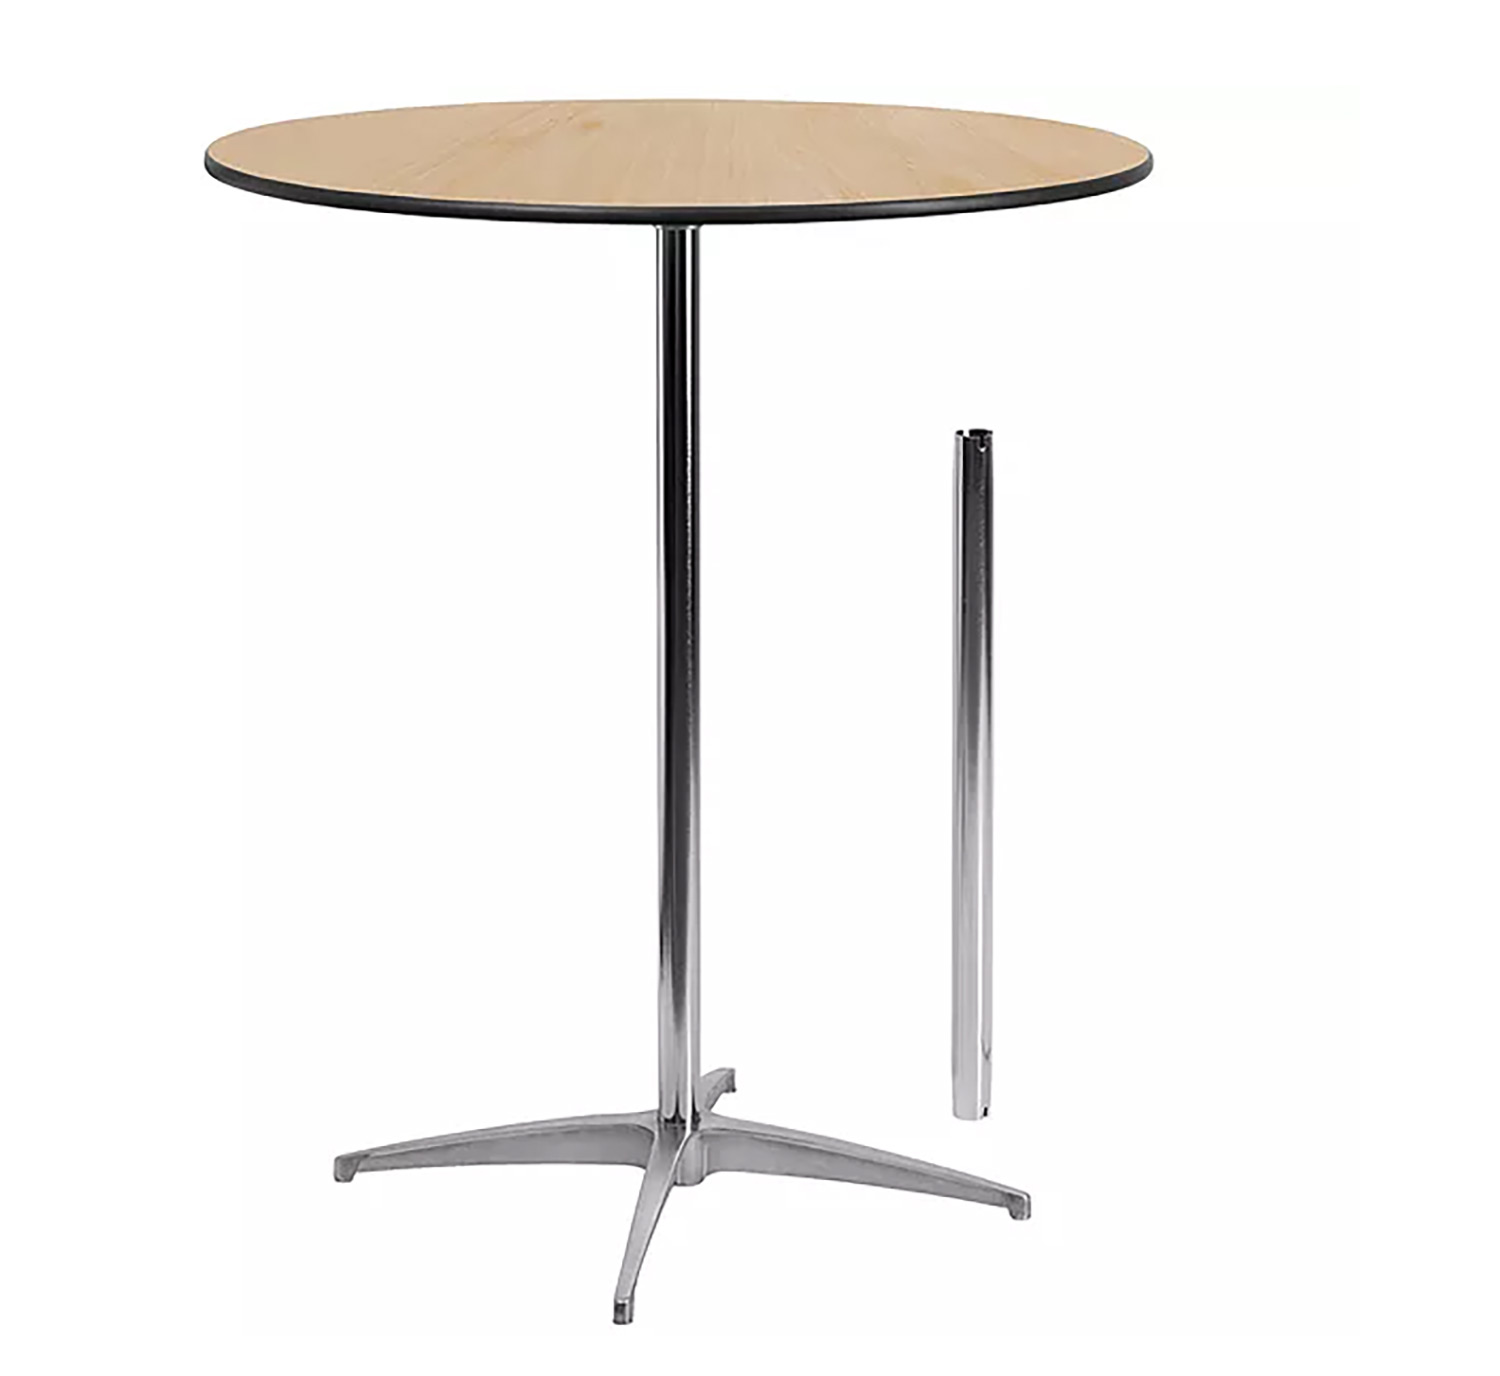 36 inch High Boy Table